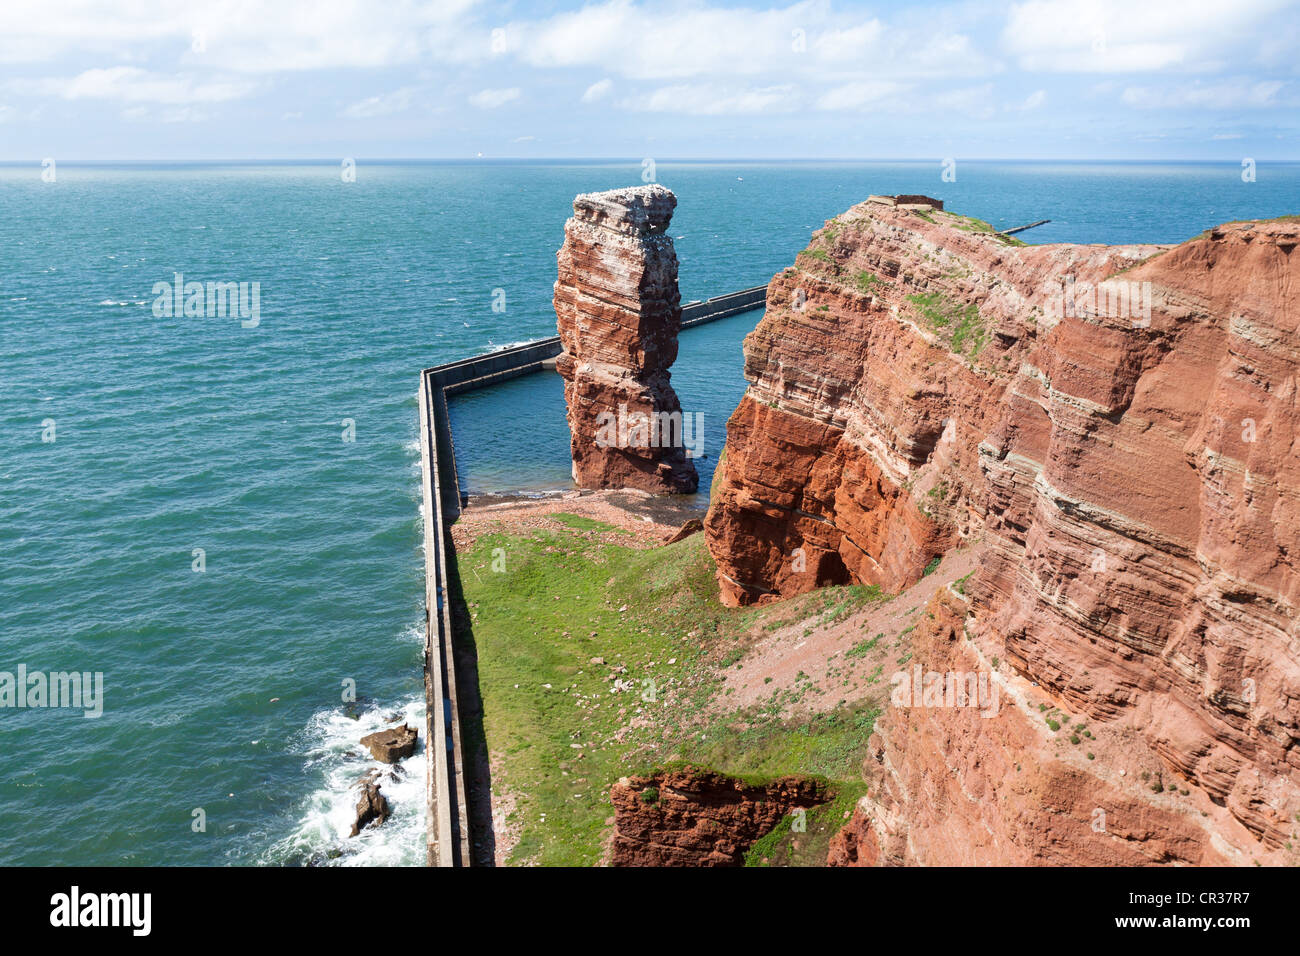 Long Anna, the only free-standing stone tower in Germany, since 1865 a landmark of Heligoland, Helgoland, Schleswig - Stock Image